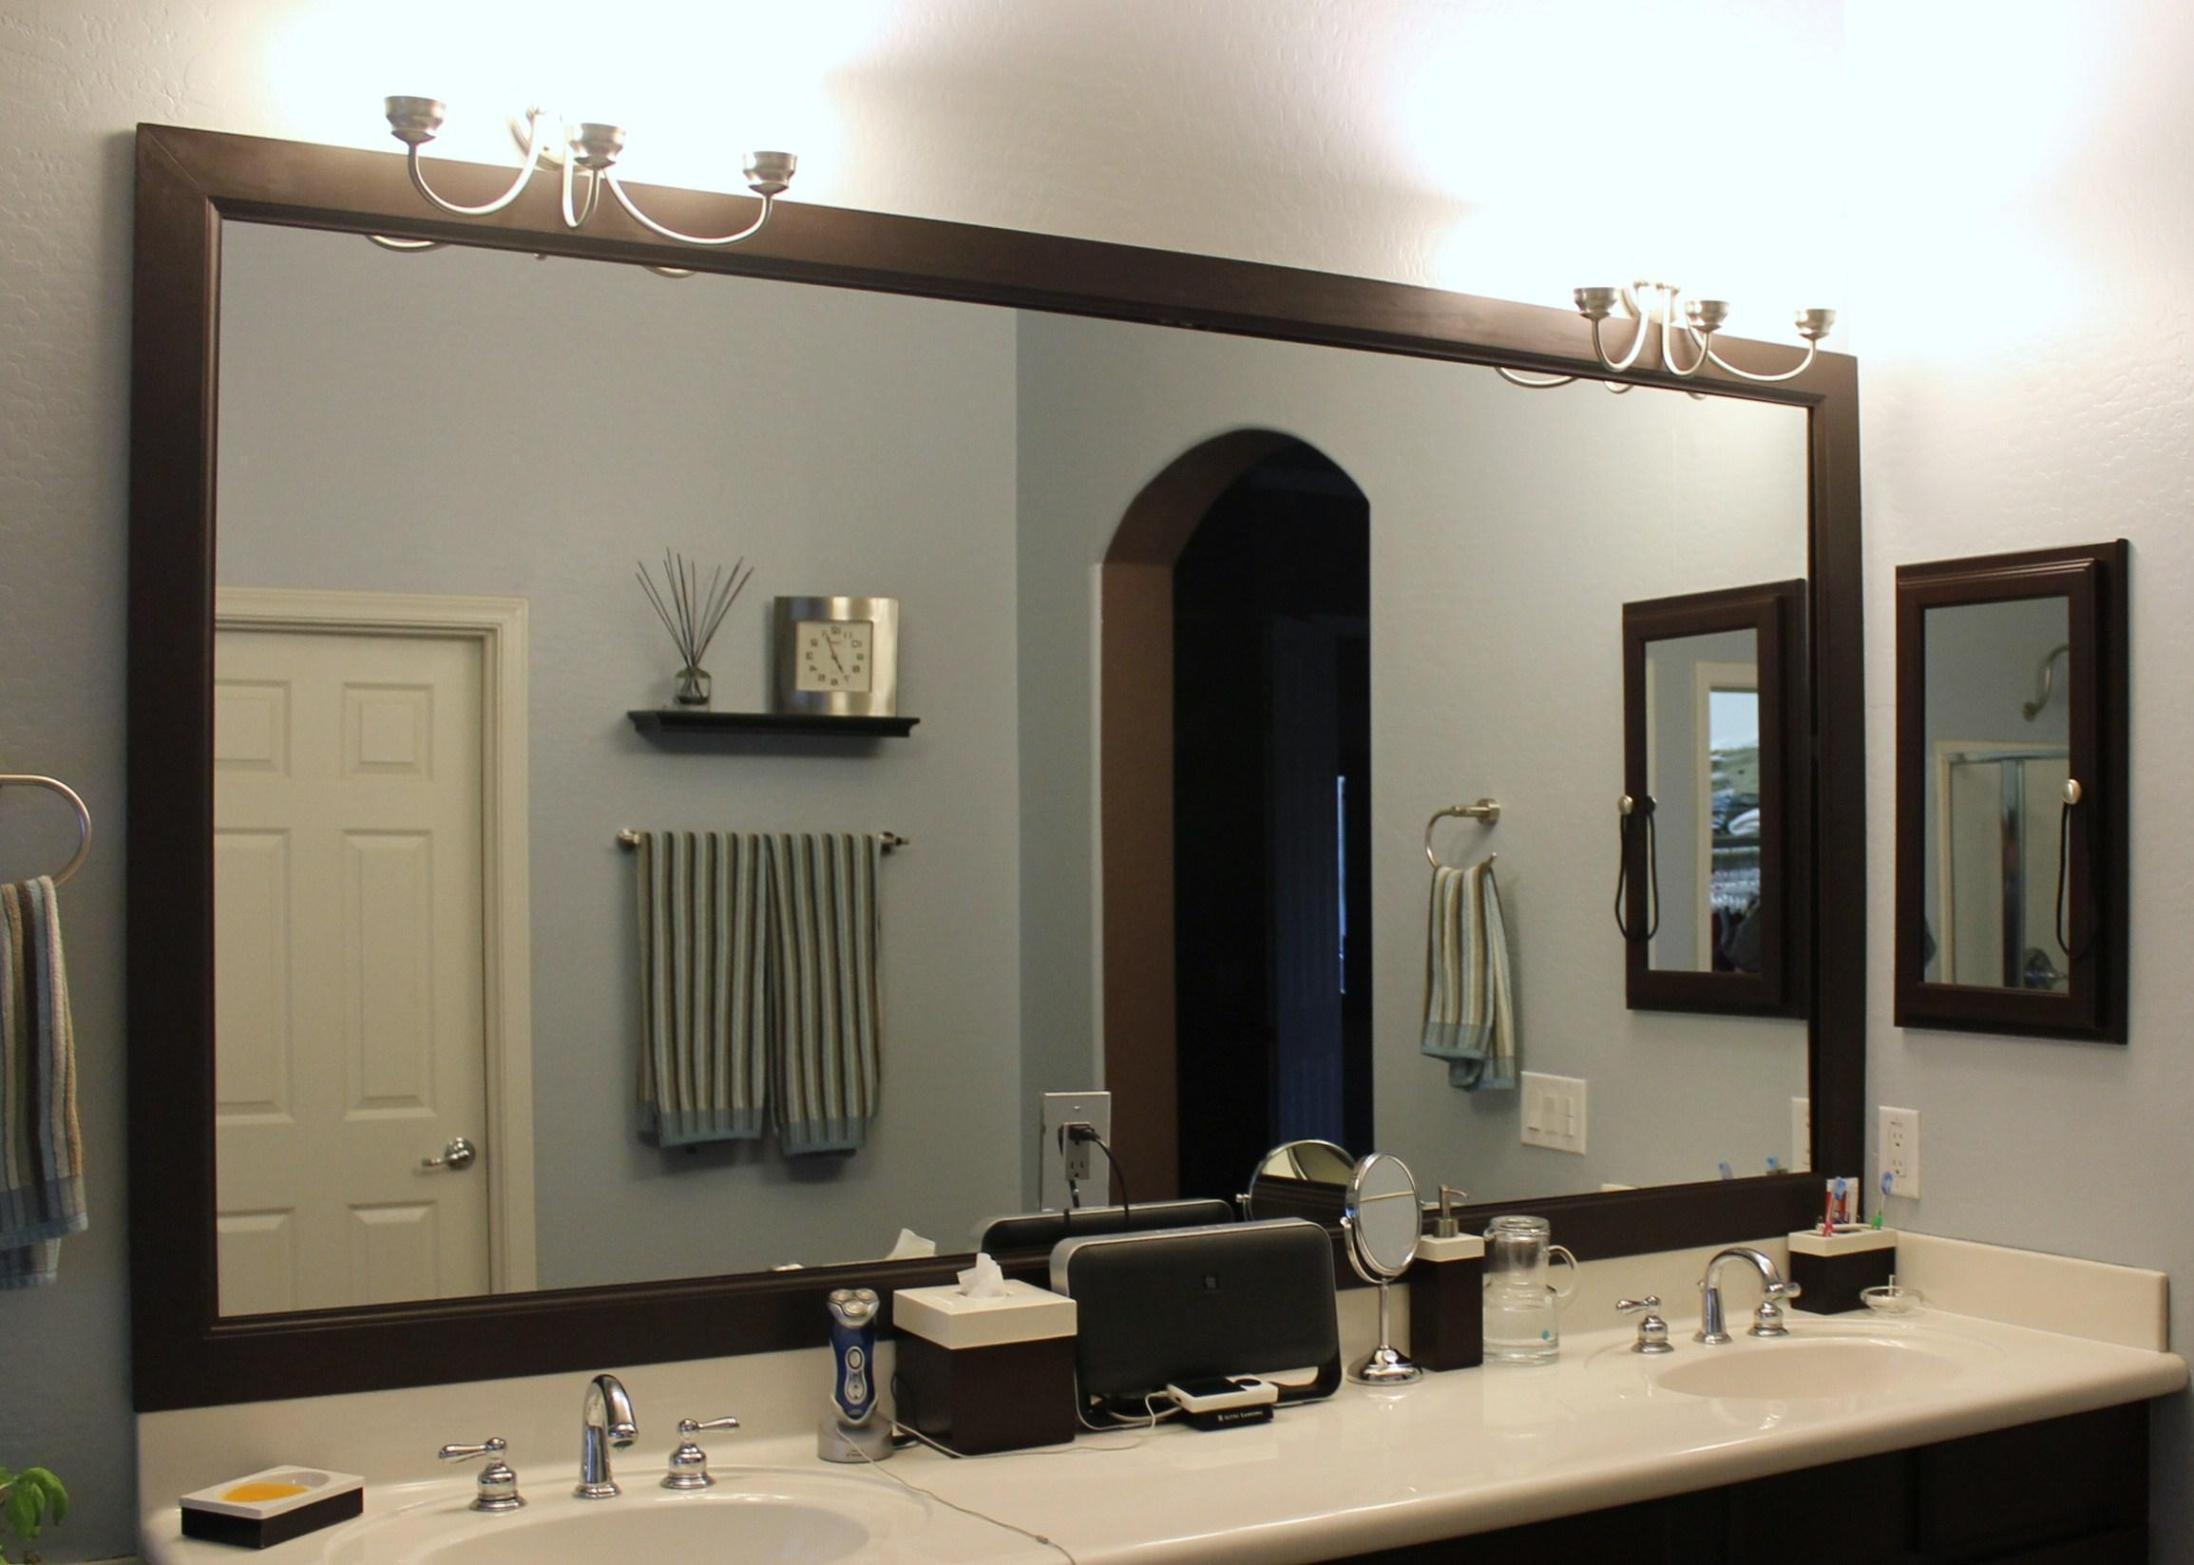 Framed Mirrors Bathroom Vanity Mirrors Large Mirror Decorative Regarding Decorative  Mirrors For Bathroom Vanity (Image